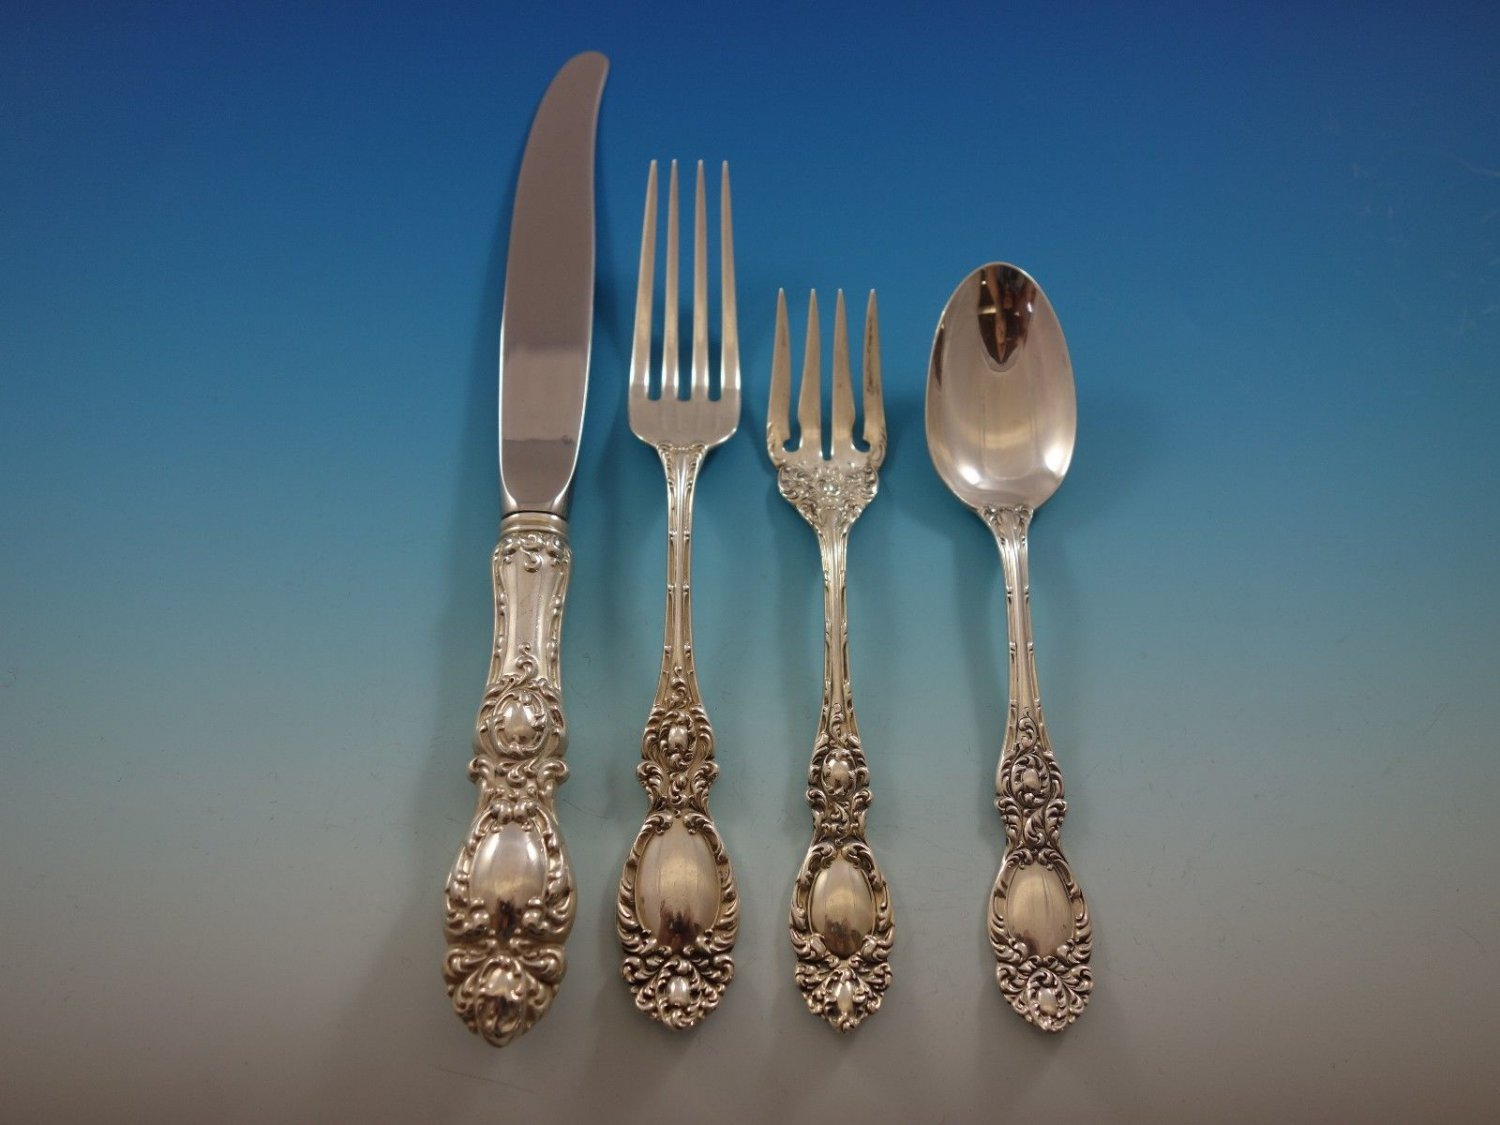 Lucerne by Wallace Sterling Silver Flatware Set for 12 Service 53 Pieces